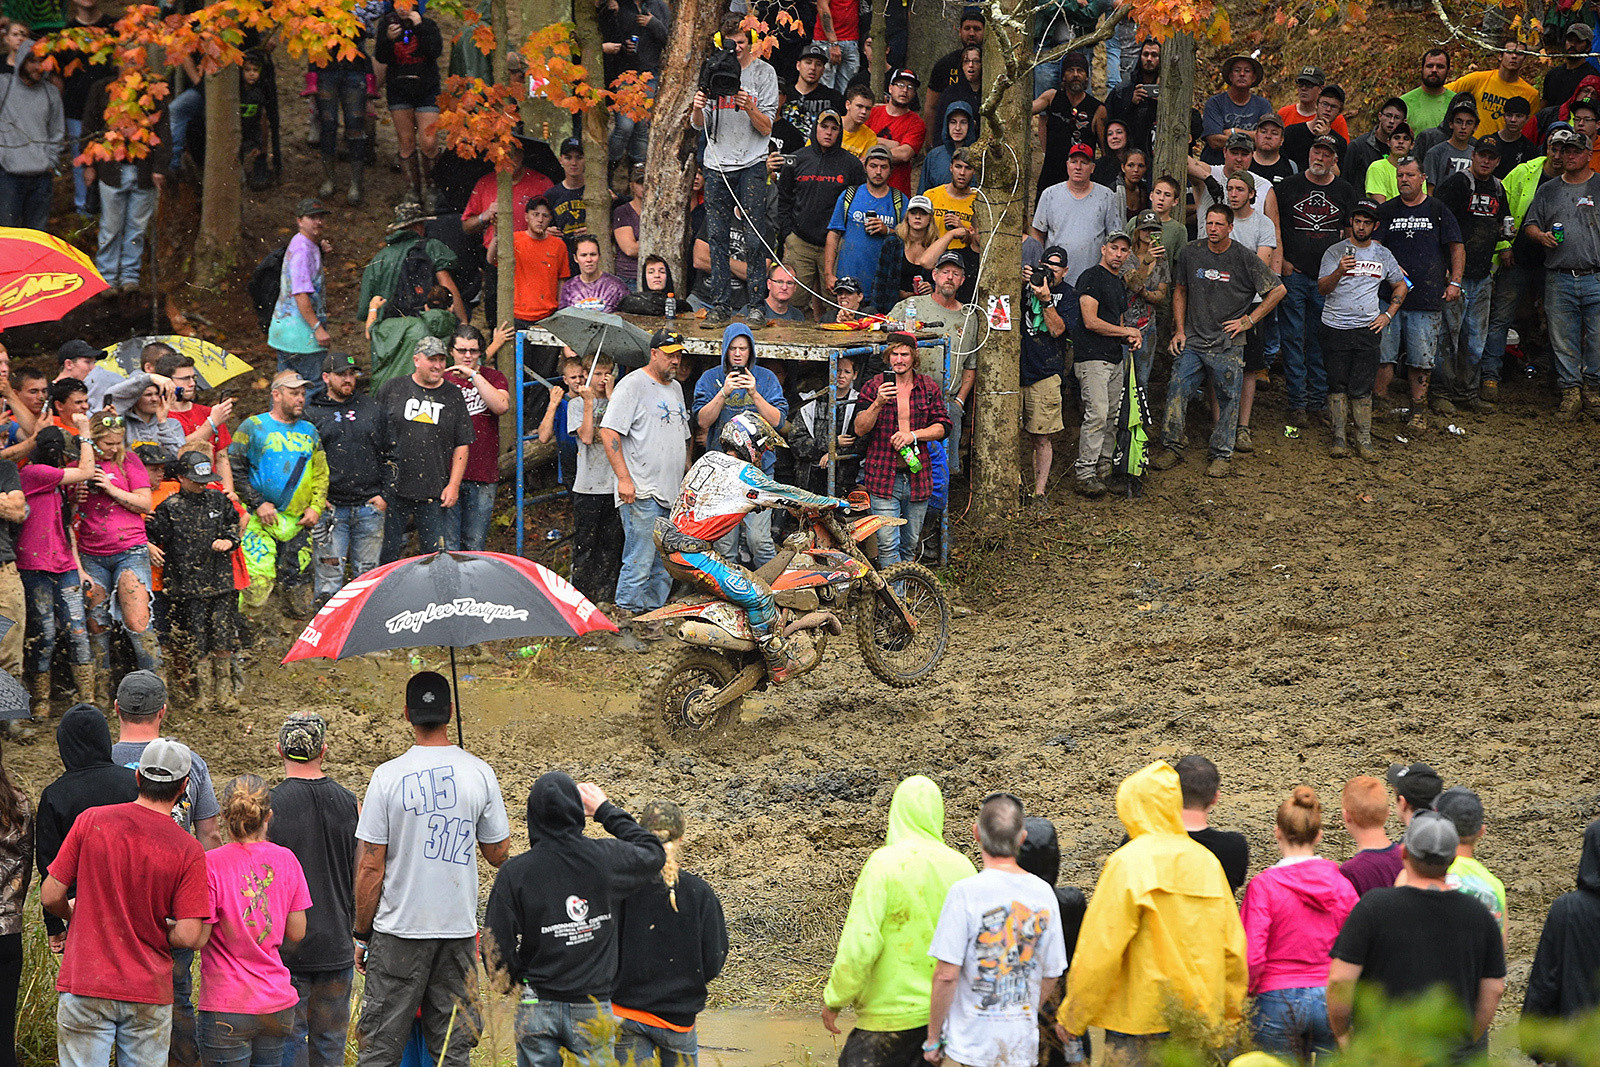 Kailub Russell making it look easy as he rode to another XC1 pro win.